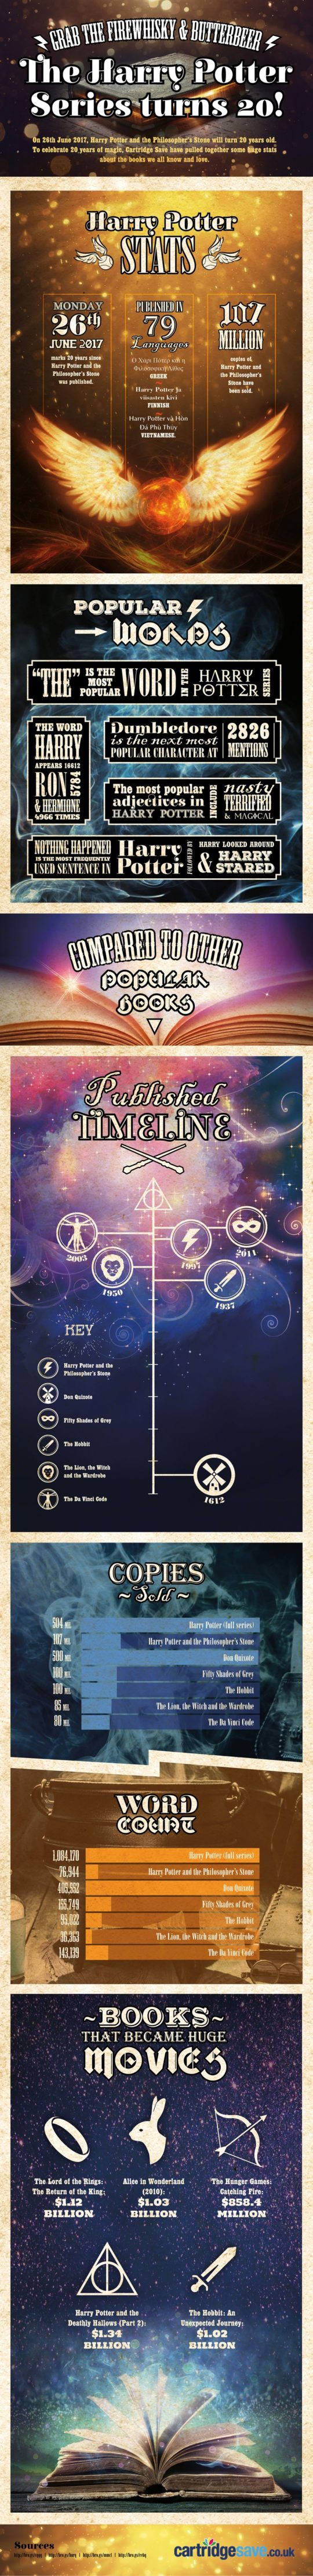 20-magical-years-of-the-harry-potter-series-full-infographic-540x4444